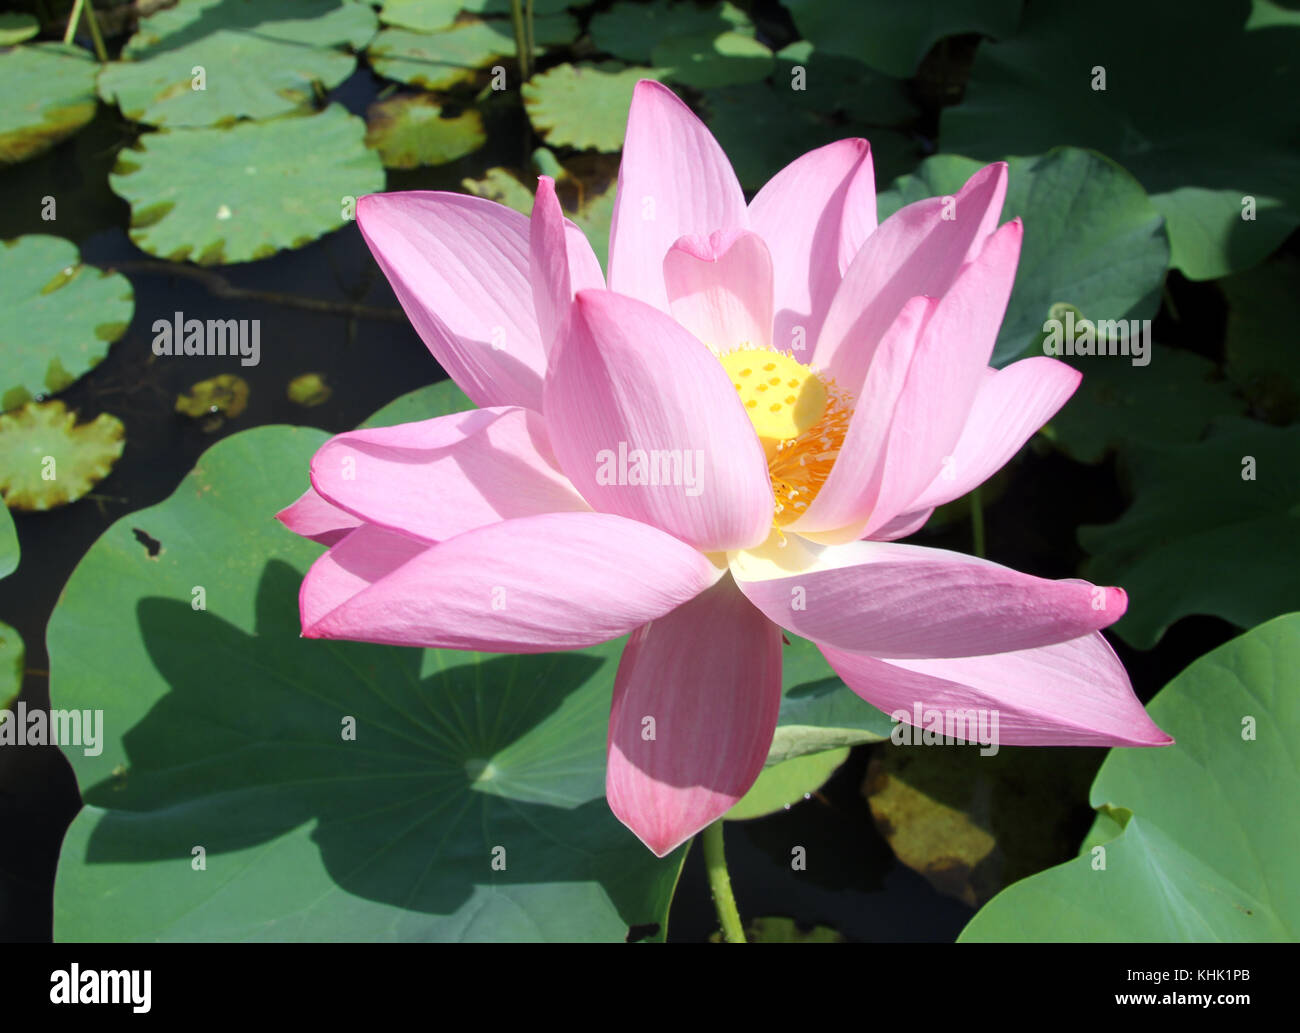 Big lotus flower and green leaves in pond stock photo royalty free big lotus flower and green leaves in pond mightylinksfo Image collections